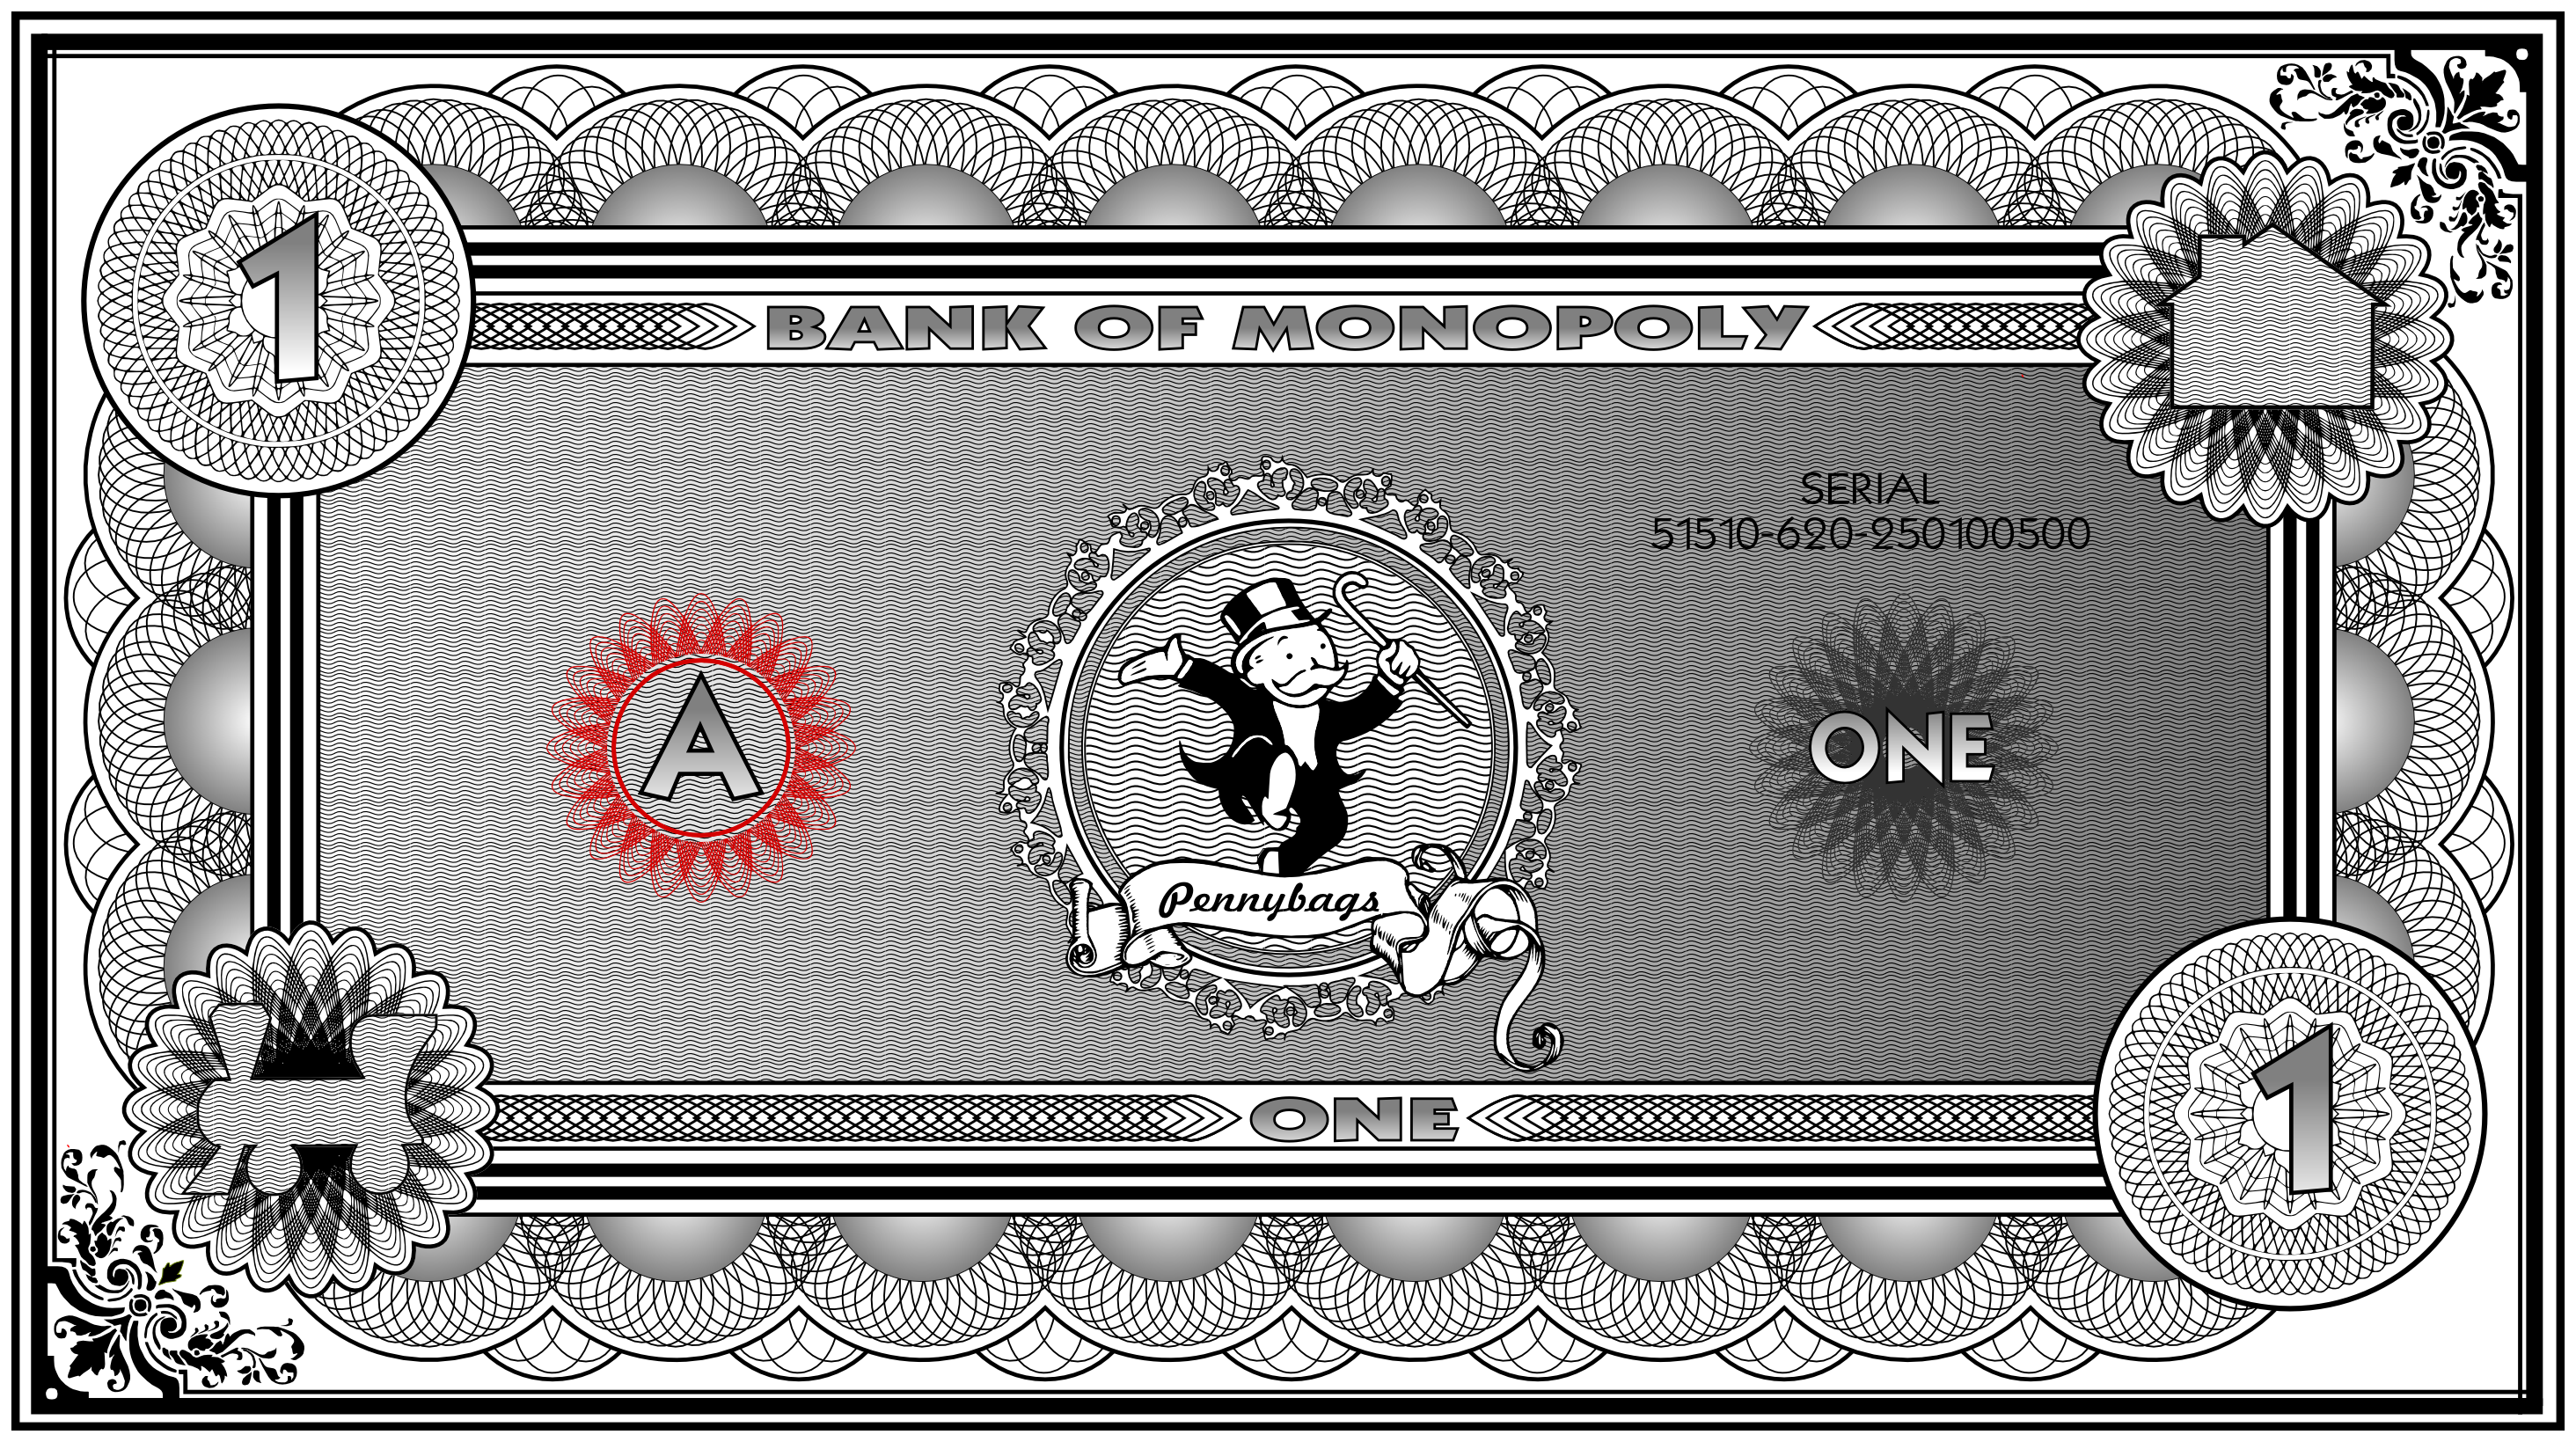 Monopoly Banknote $1